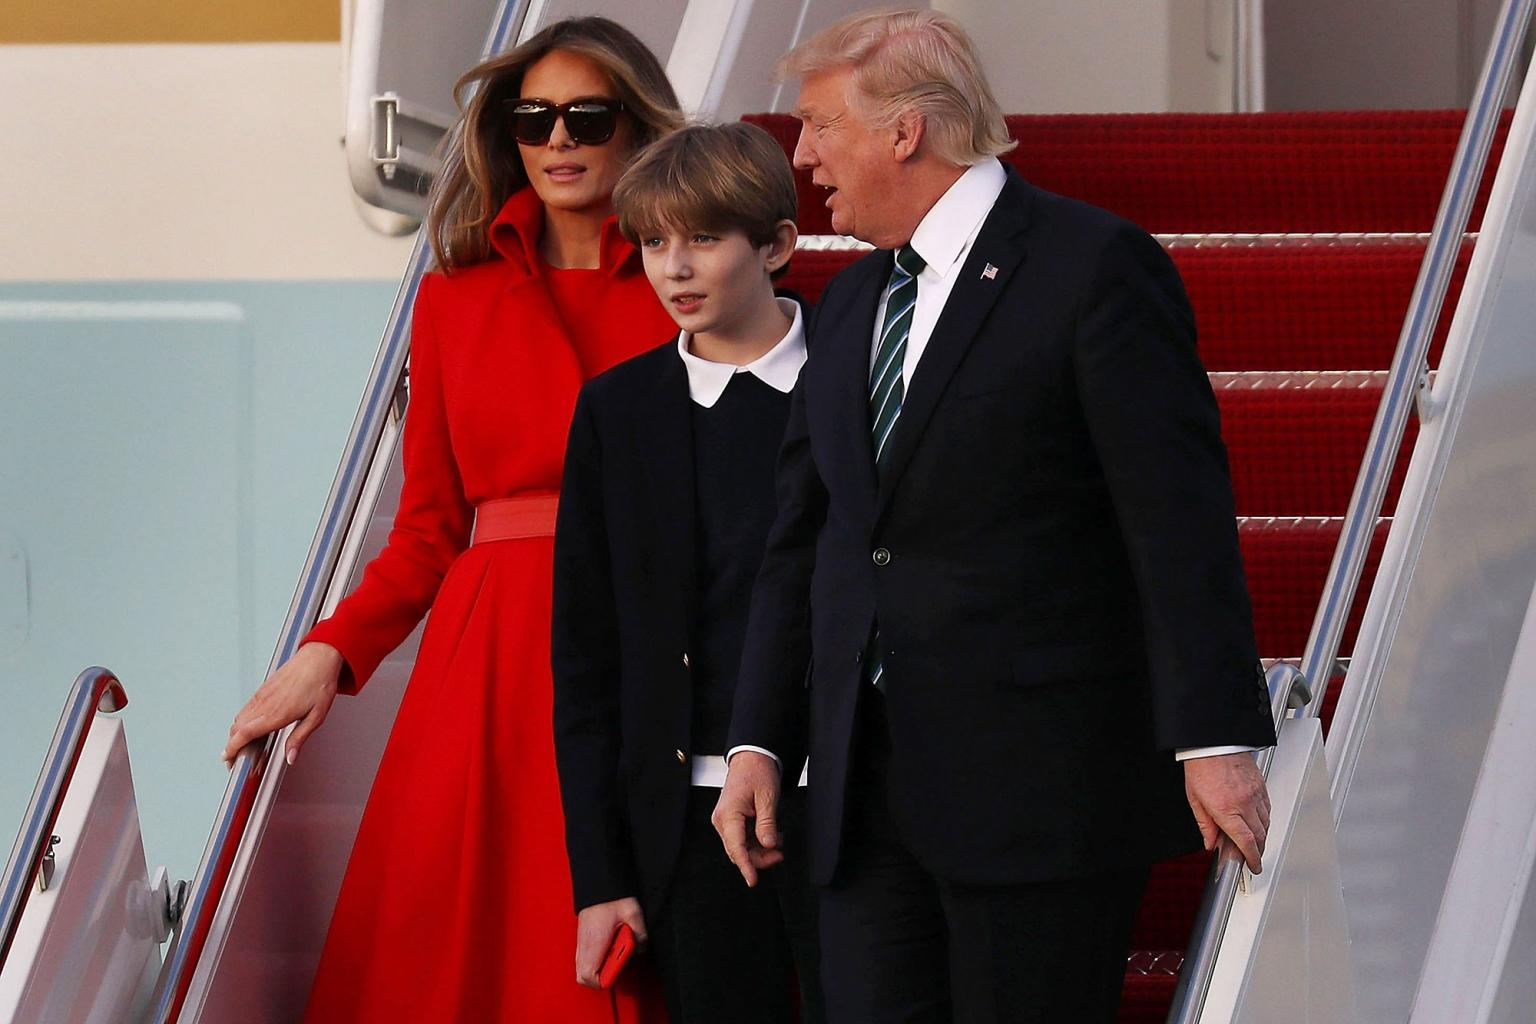 First Lady Melania Trump and Son Barron Set to Move to White House This Summer